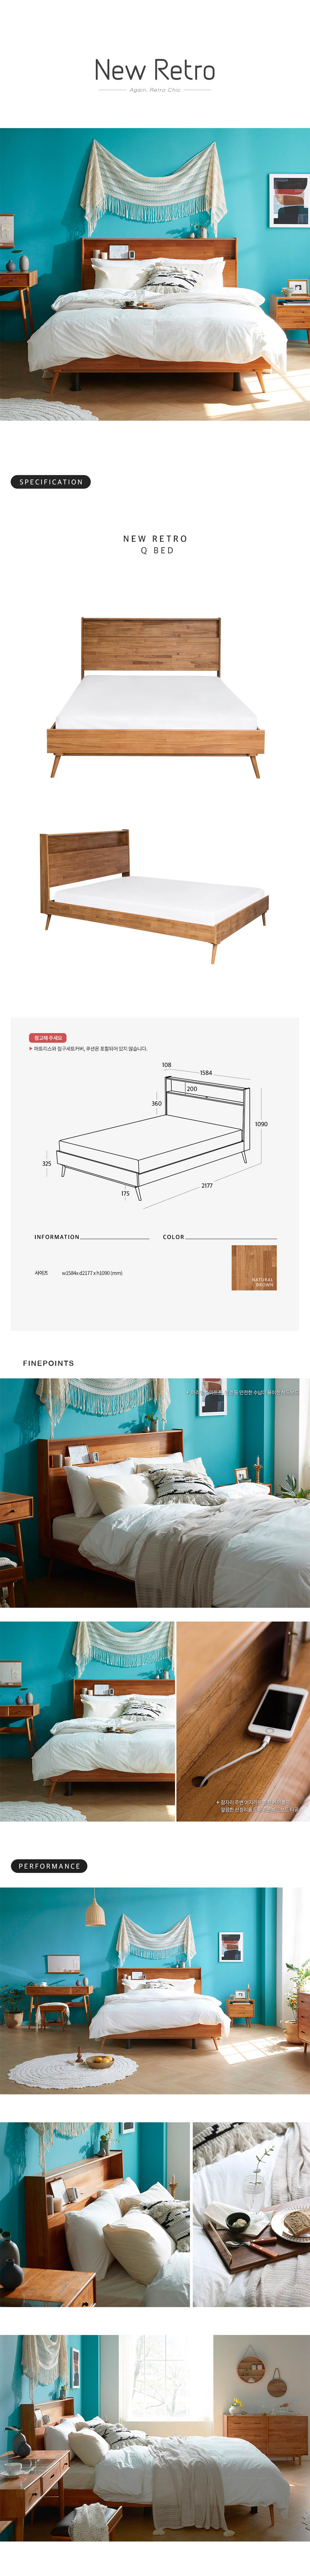 New_Retro_Queen_Bed_Frame_2m_specs_by_born_in_colour